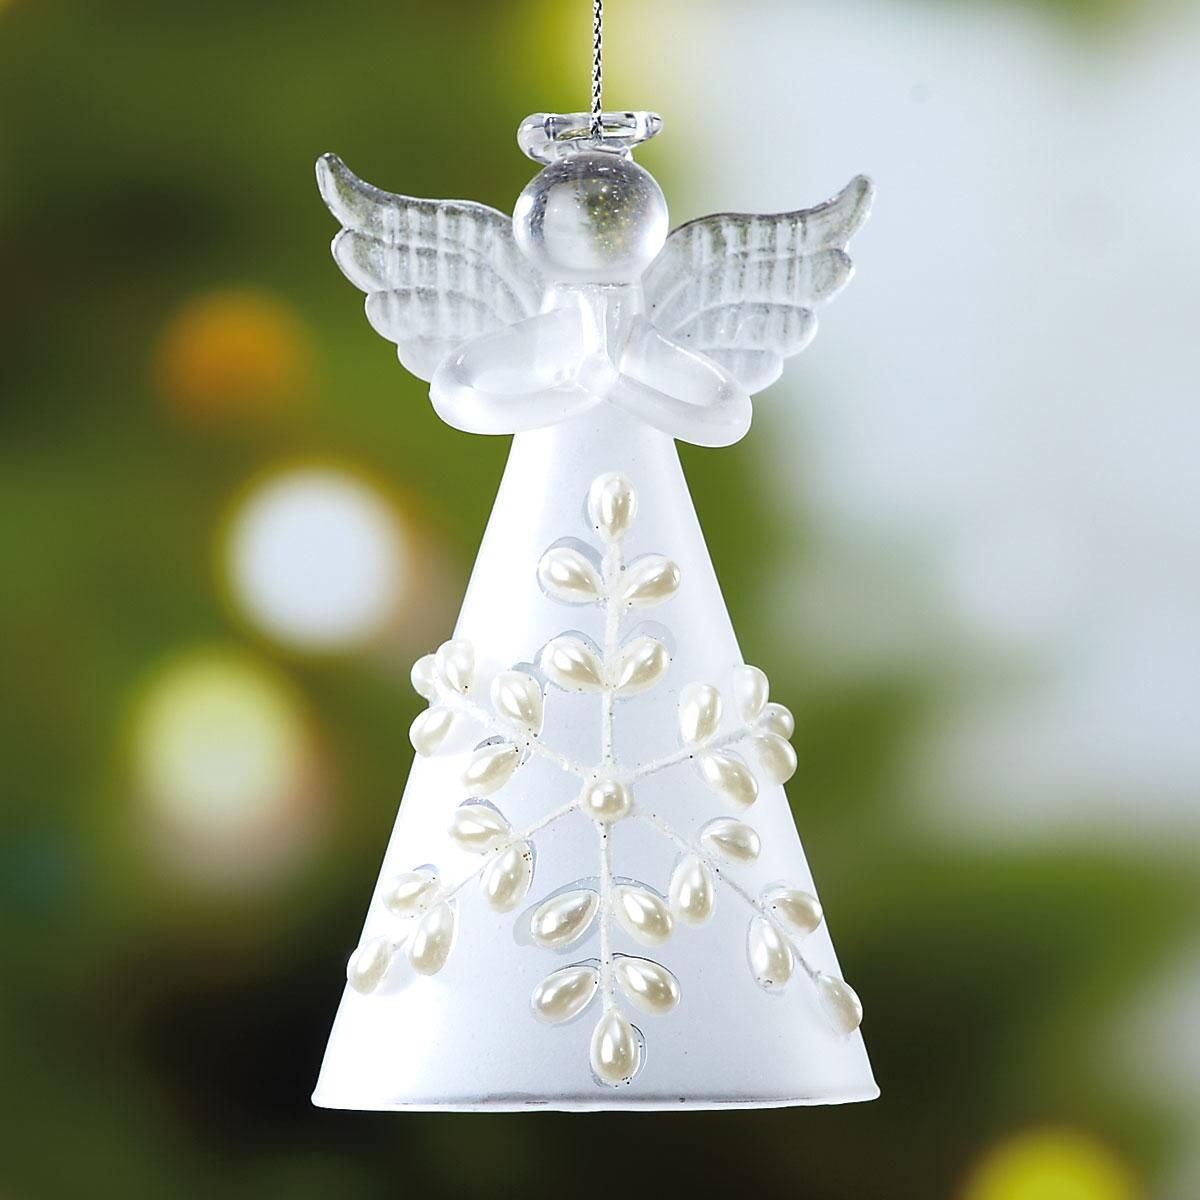 Glass Snow Angel Christmas Ornament - Buy 1, Get 1 Free